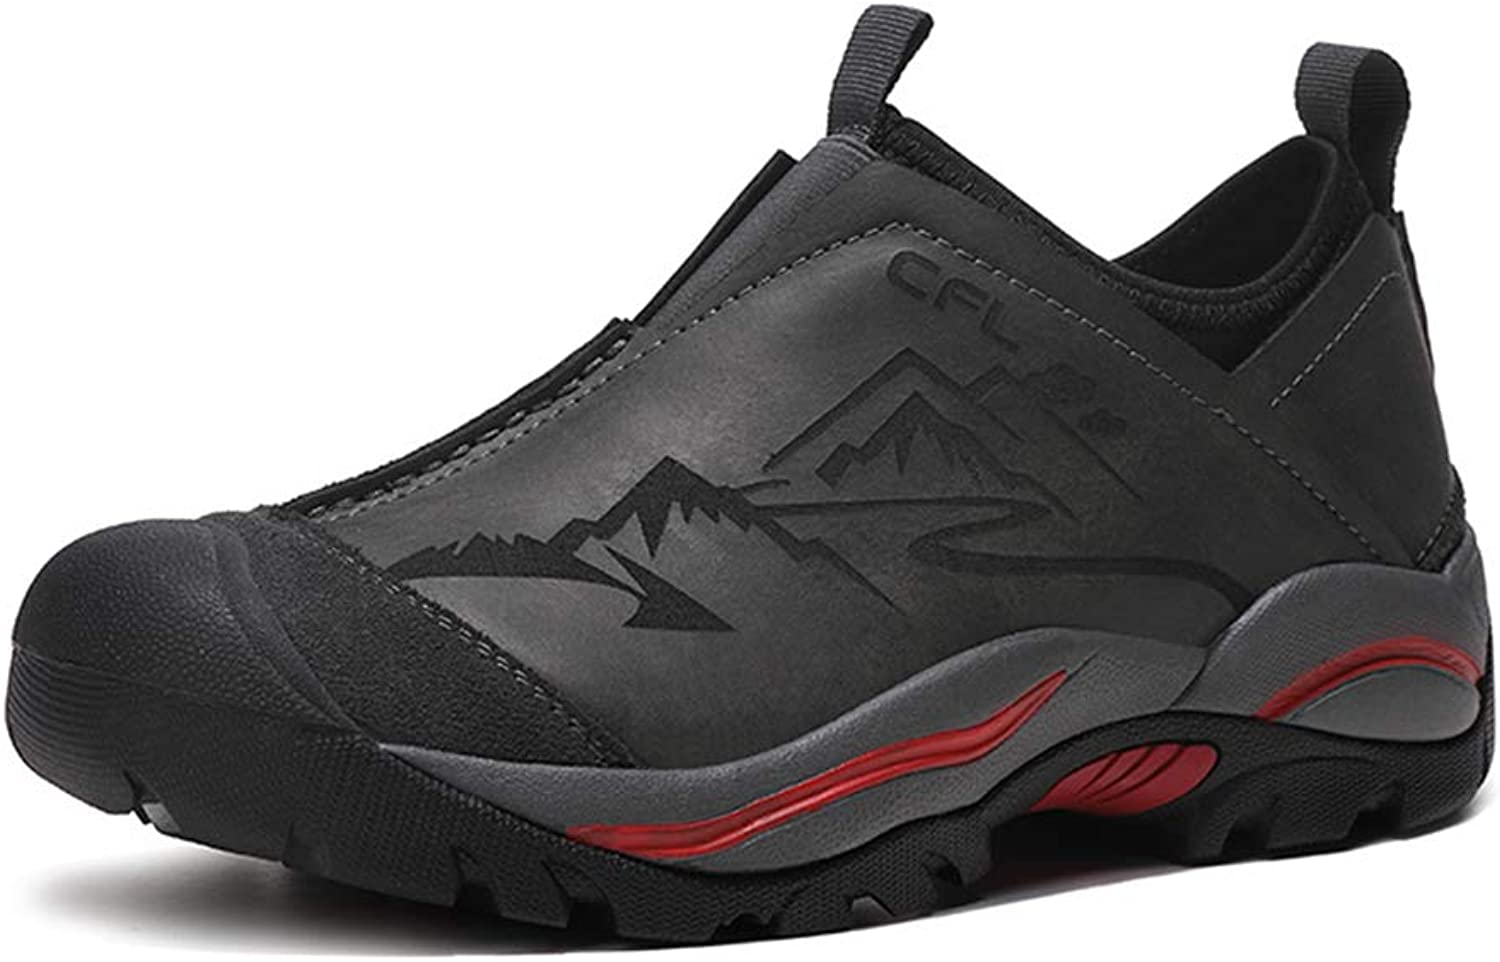 Men's Hiking shoes Outdoor Casual shoes Fall Winter Leather Mountain Camping shoes Tourism Fitness Running shoes,C,41